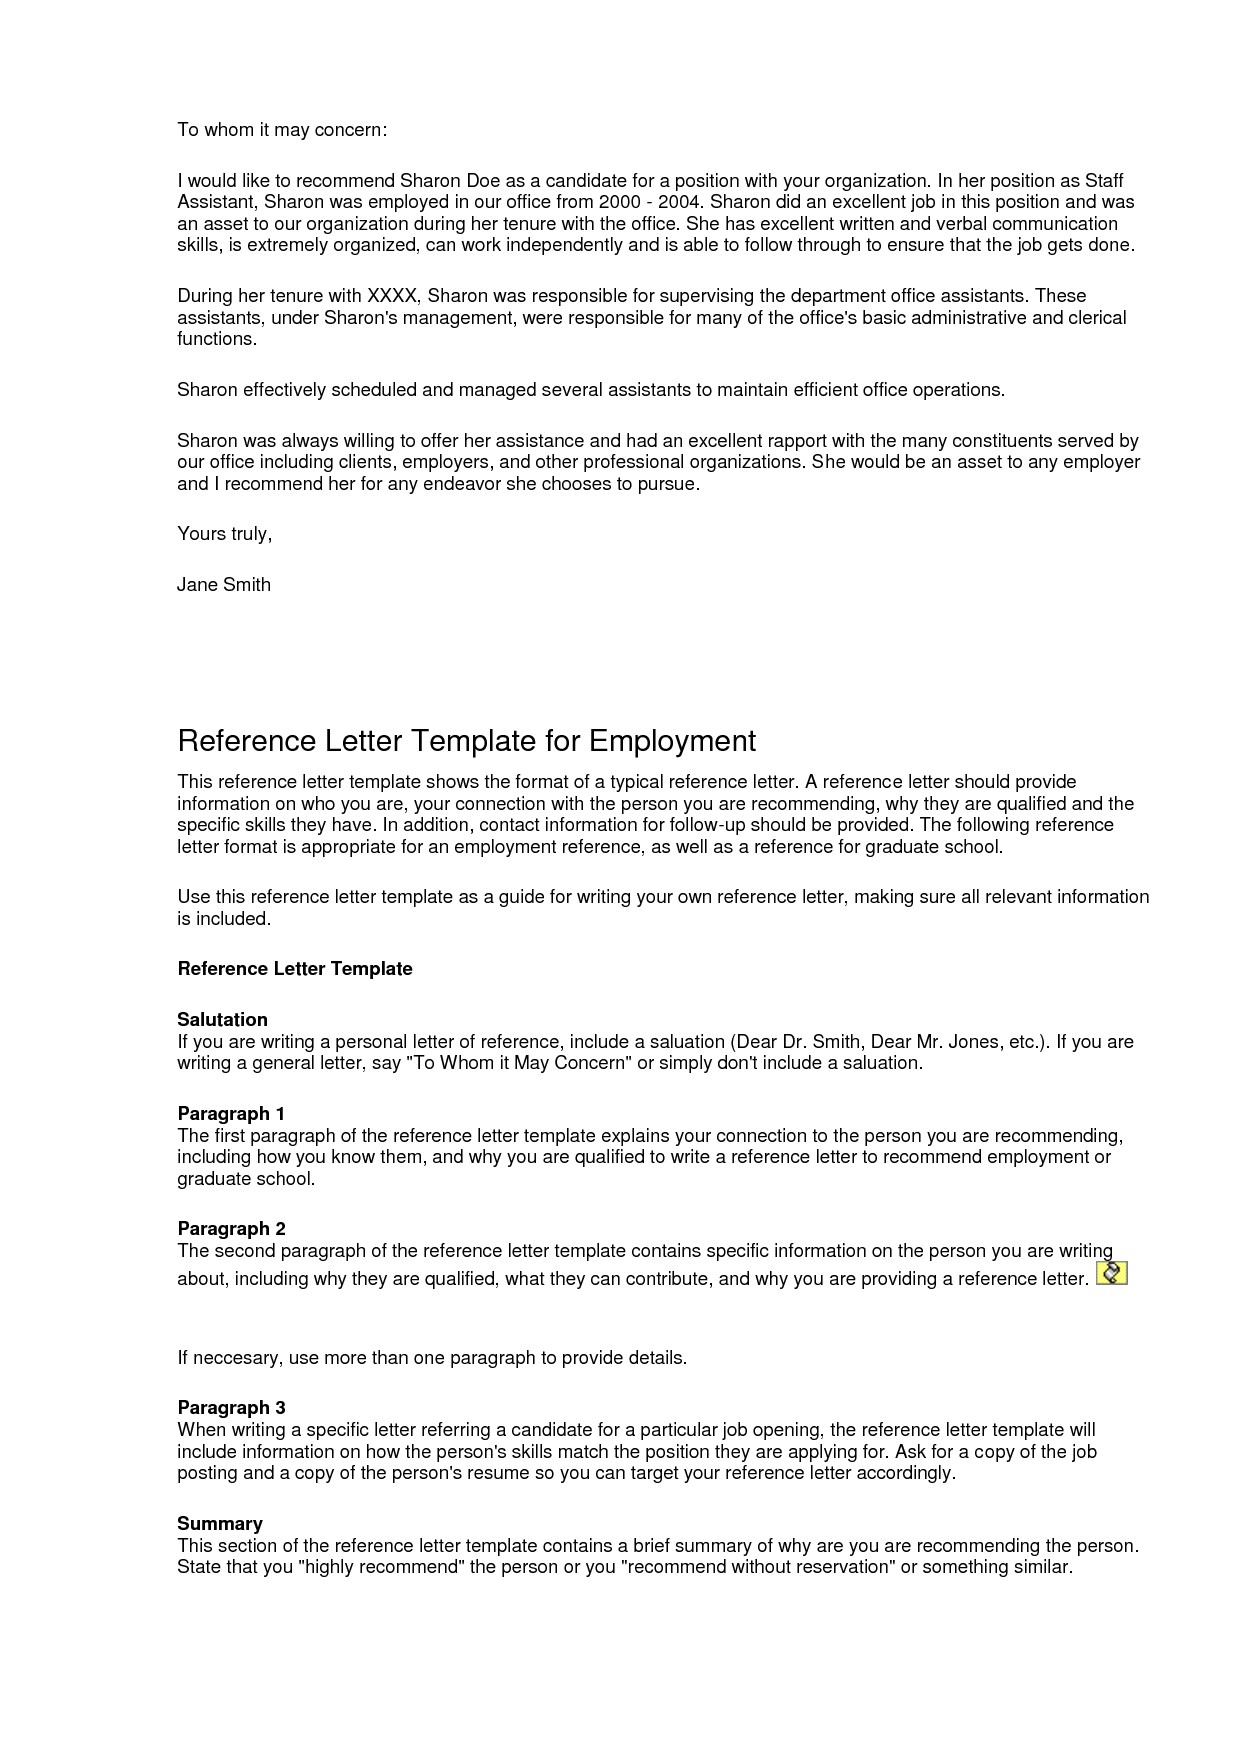 Letter Of Recommendation Template for Student - Writing A Letter Re Mendation for A Student for A Job New